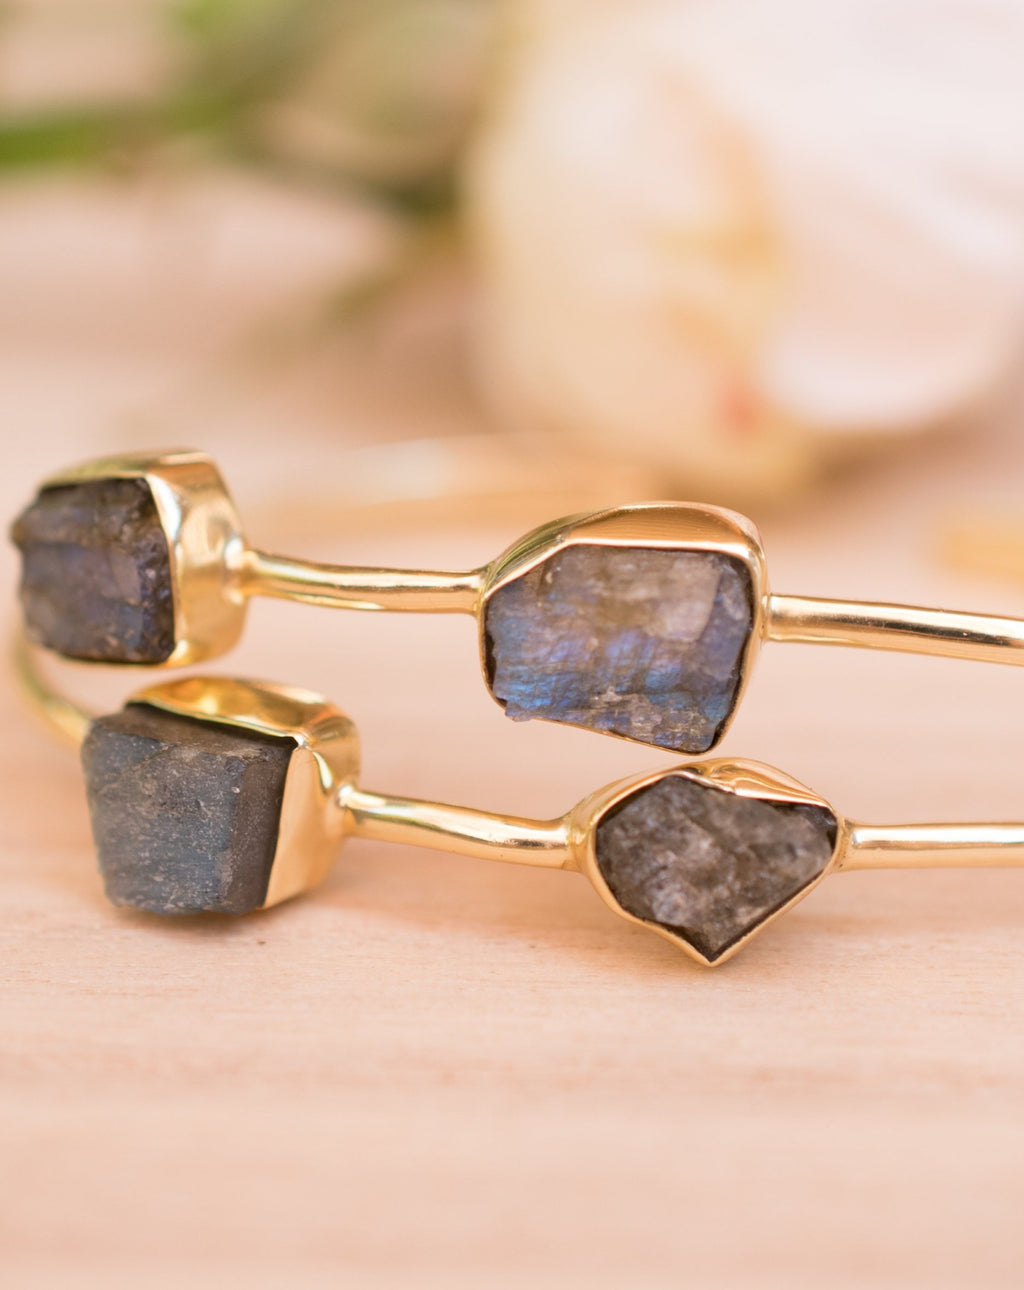 Rough Labradorite Bangle Bracelet *Gold Plated 18k* Gemstone * Gypsy * Hippie * Adjustable * Statement * Stacking * Layering * BJB028